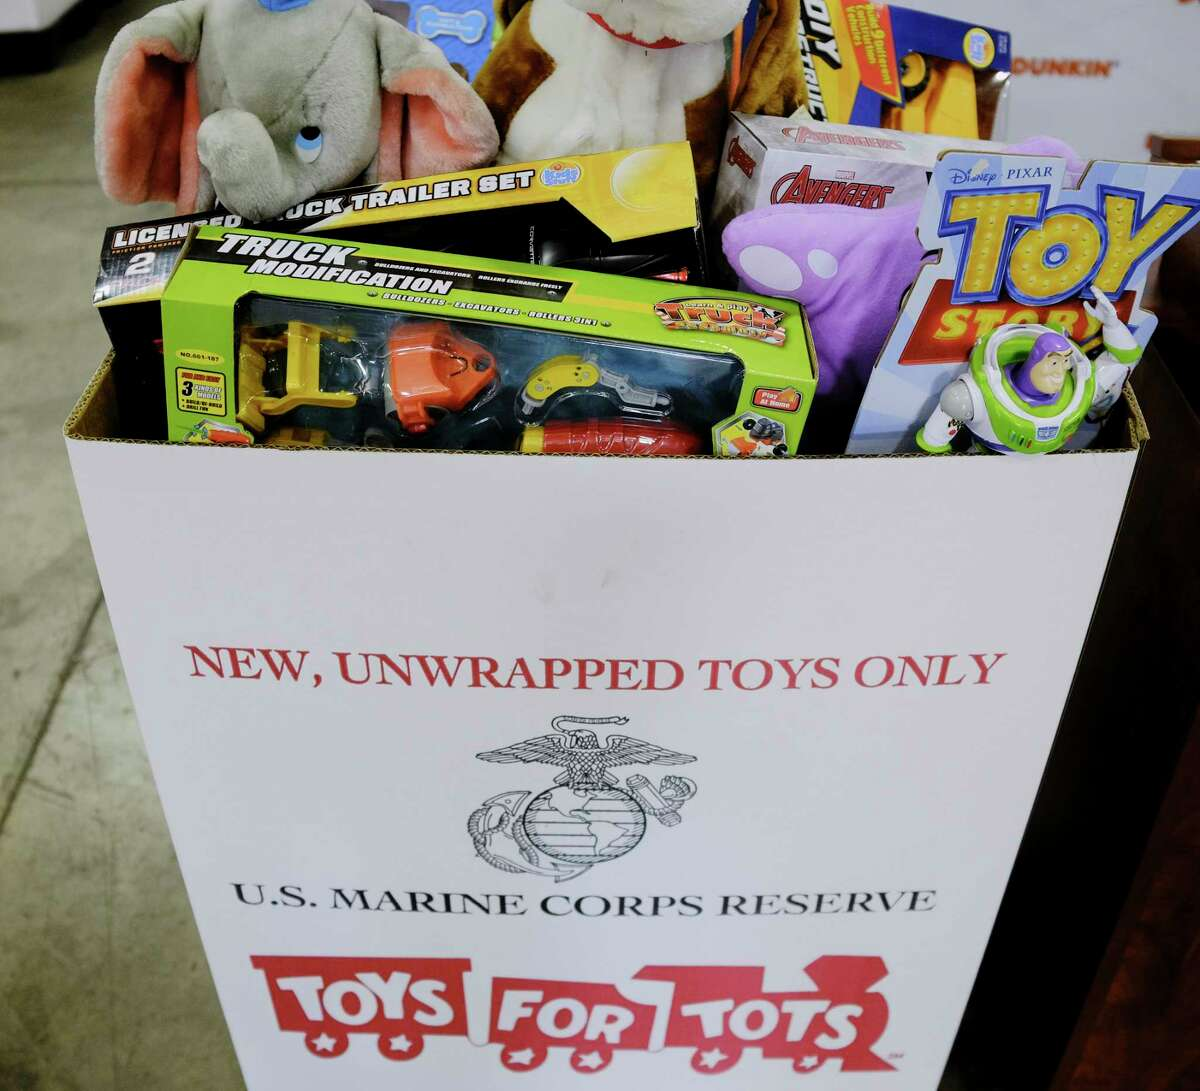 Veterans, members of the military, elected officials and representatives from various businesses gather to take part in a press event to launch the 2020 Toys for Tots toy drive on Thursday, Oct. 15, 2020, in Clifton Park, N.Y. (Paul Buckowski/Times Union)